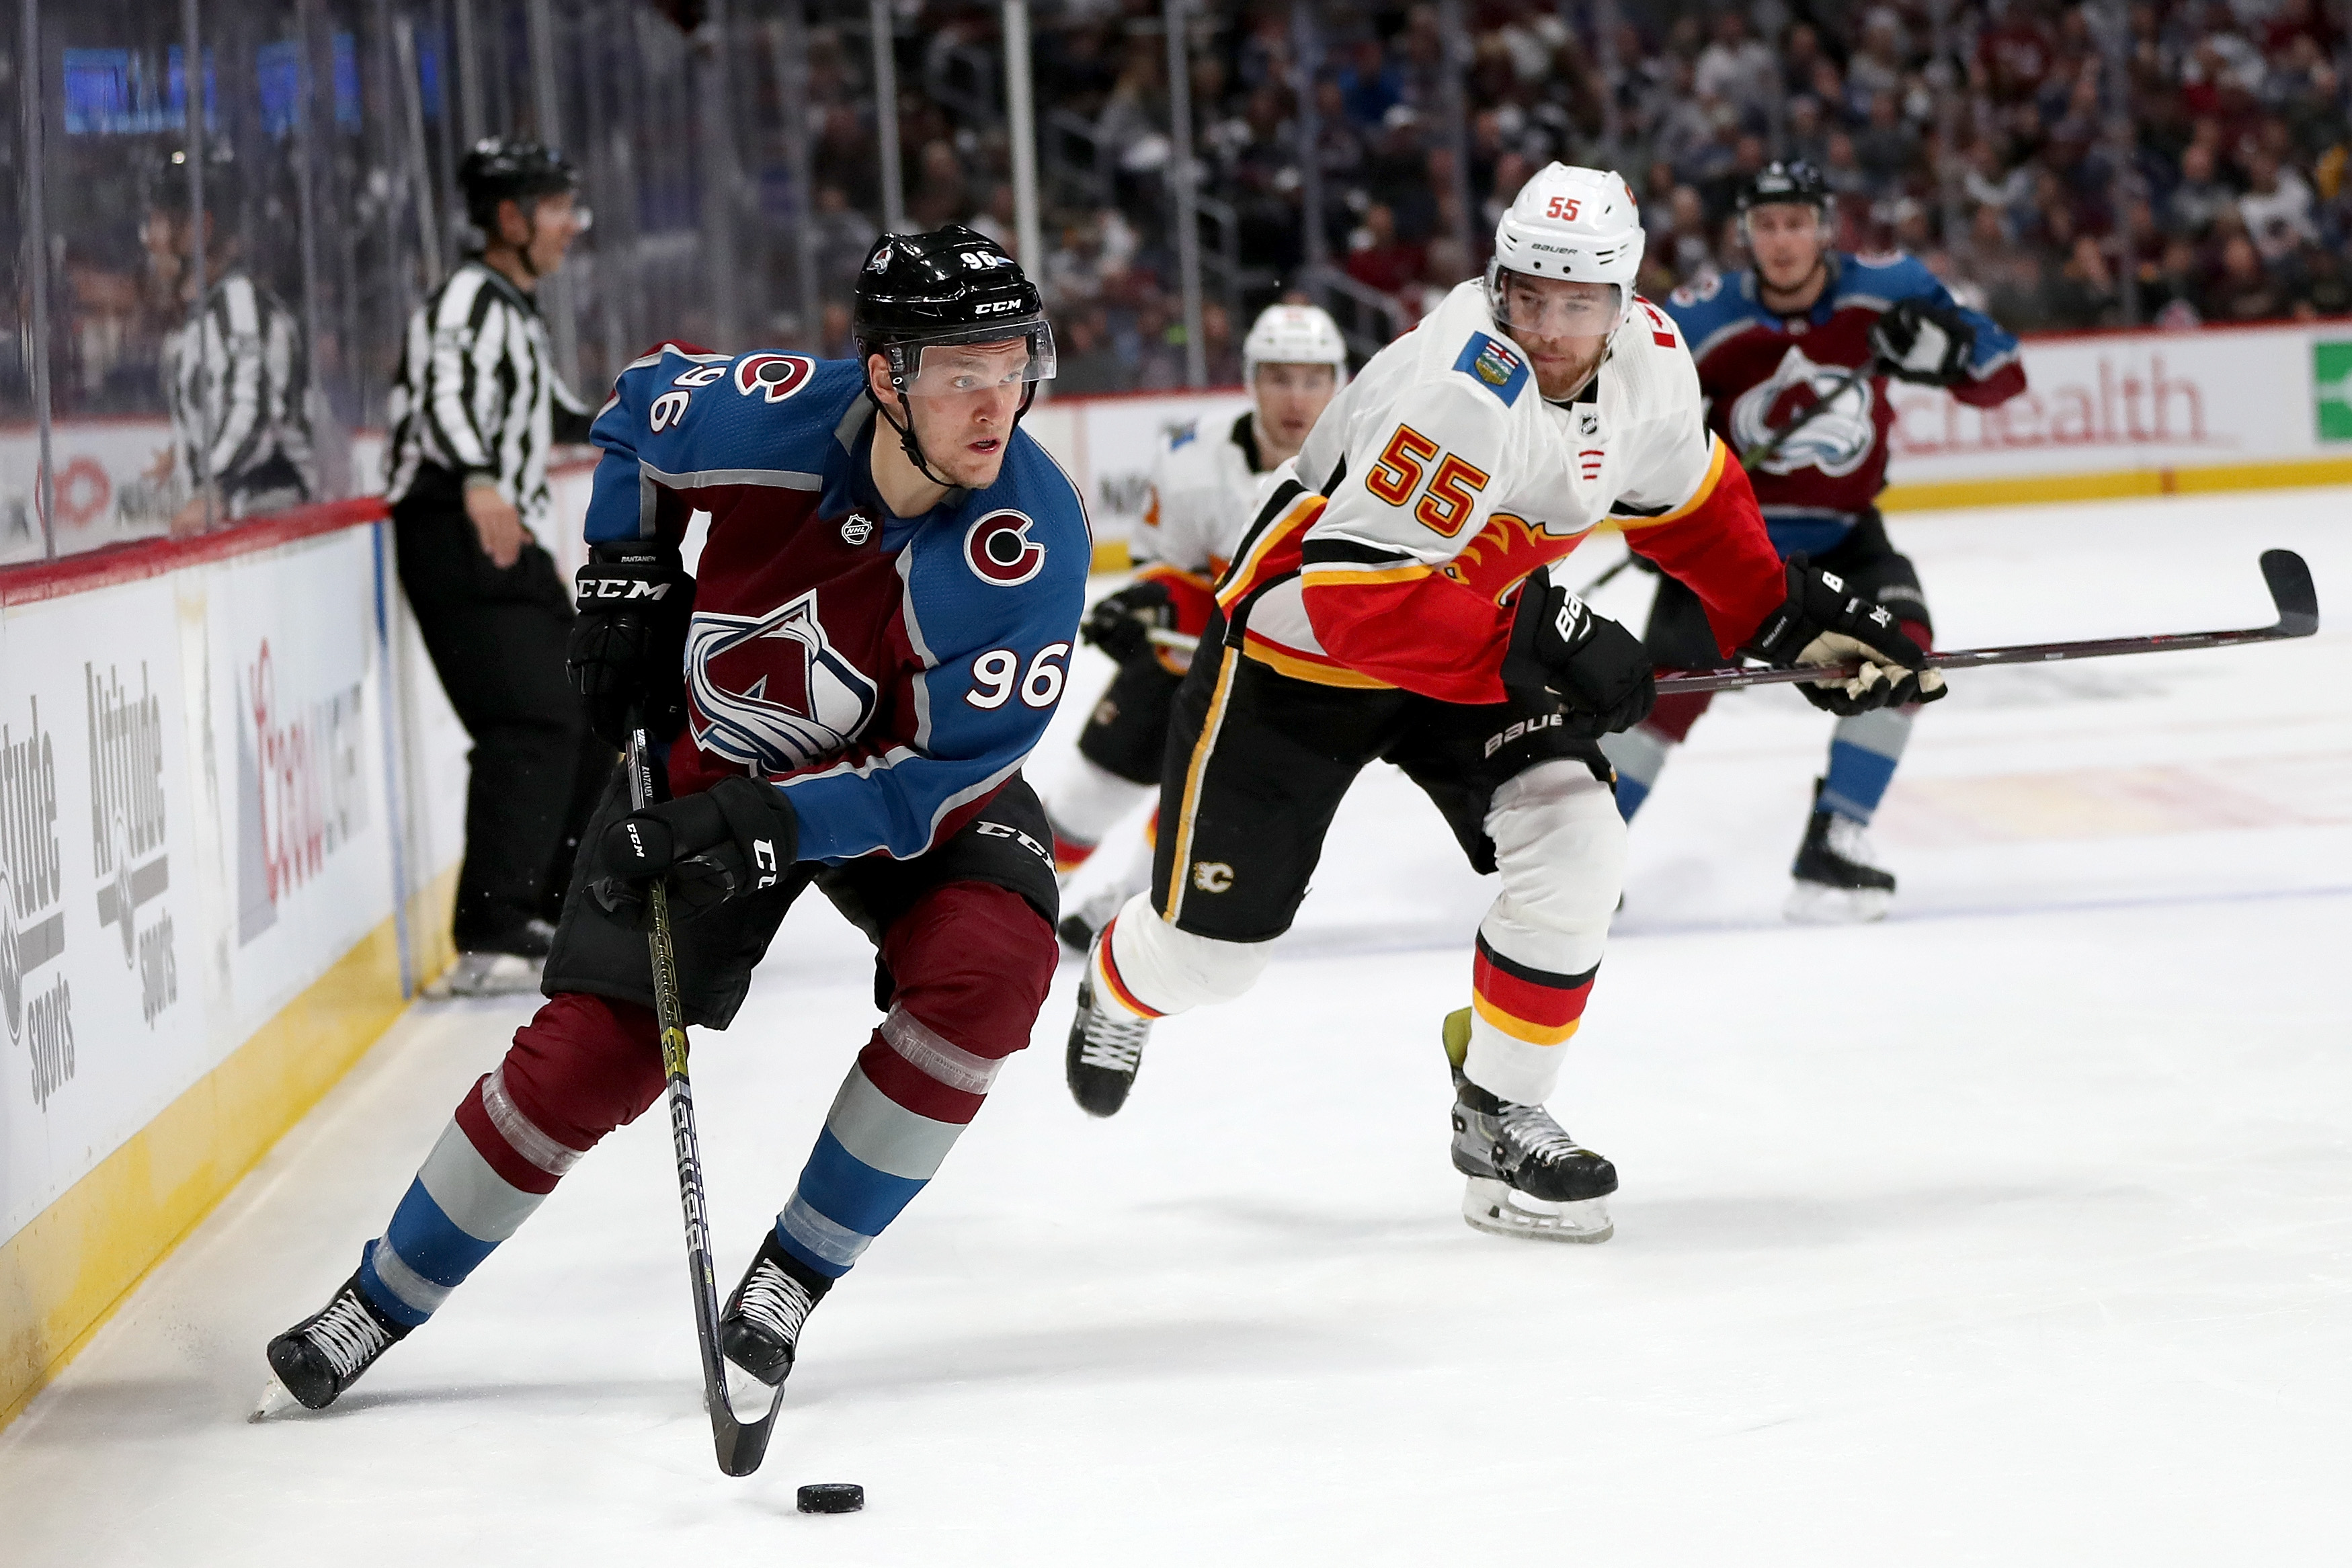 DENVER, COLORADO - APRIL 15: Mikko Rantanen #96 of the Colorado Avalanche advances the puck against the Calgary Flames in the second period during Game Three of the Western Conference First Round during the 2019 NHL Stanley Cup Playoffs at the Pepsi Cente